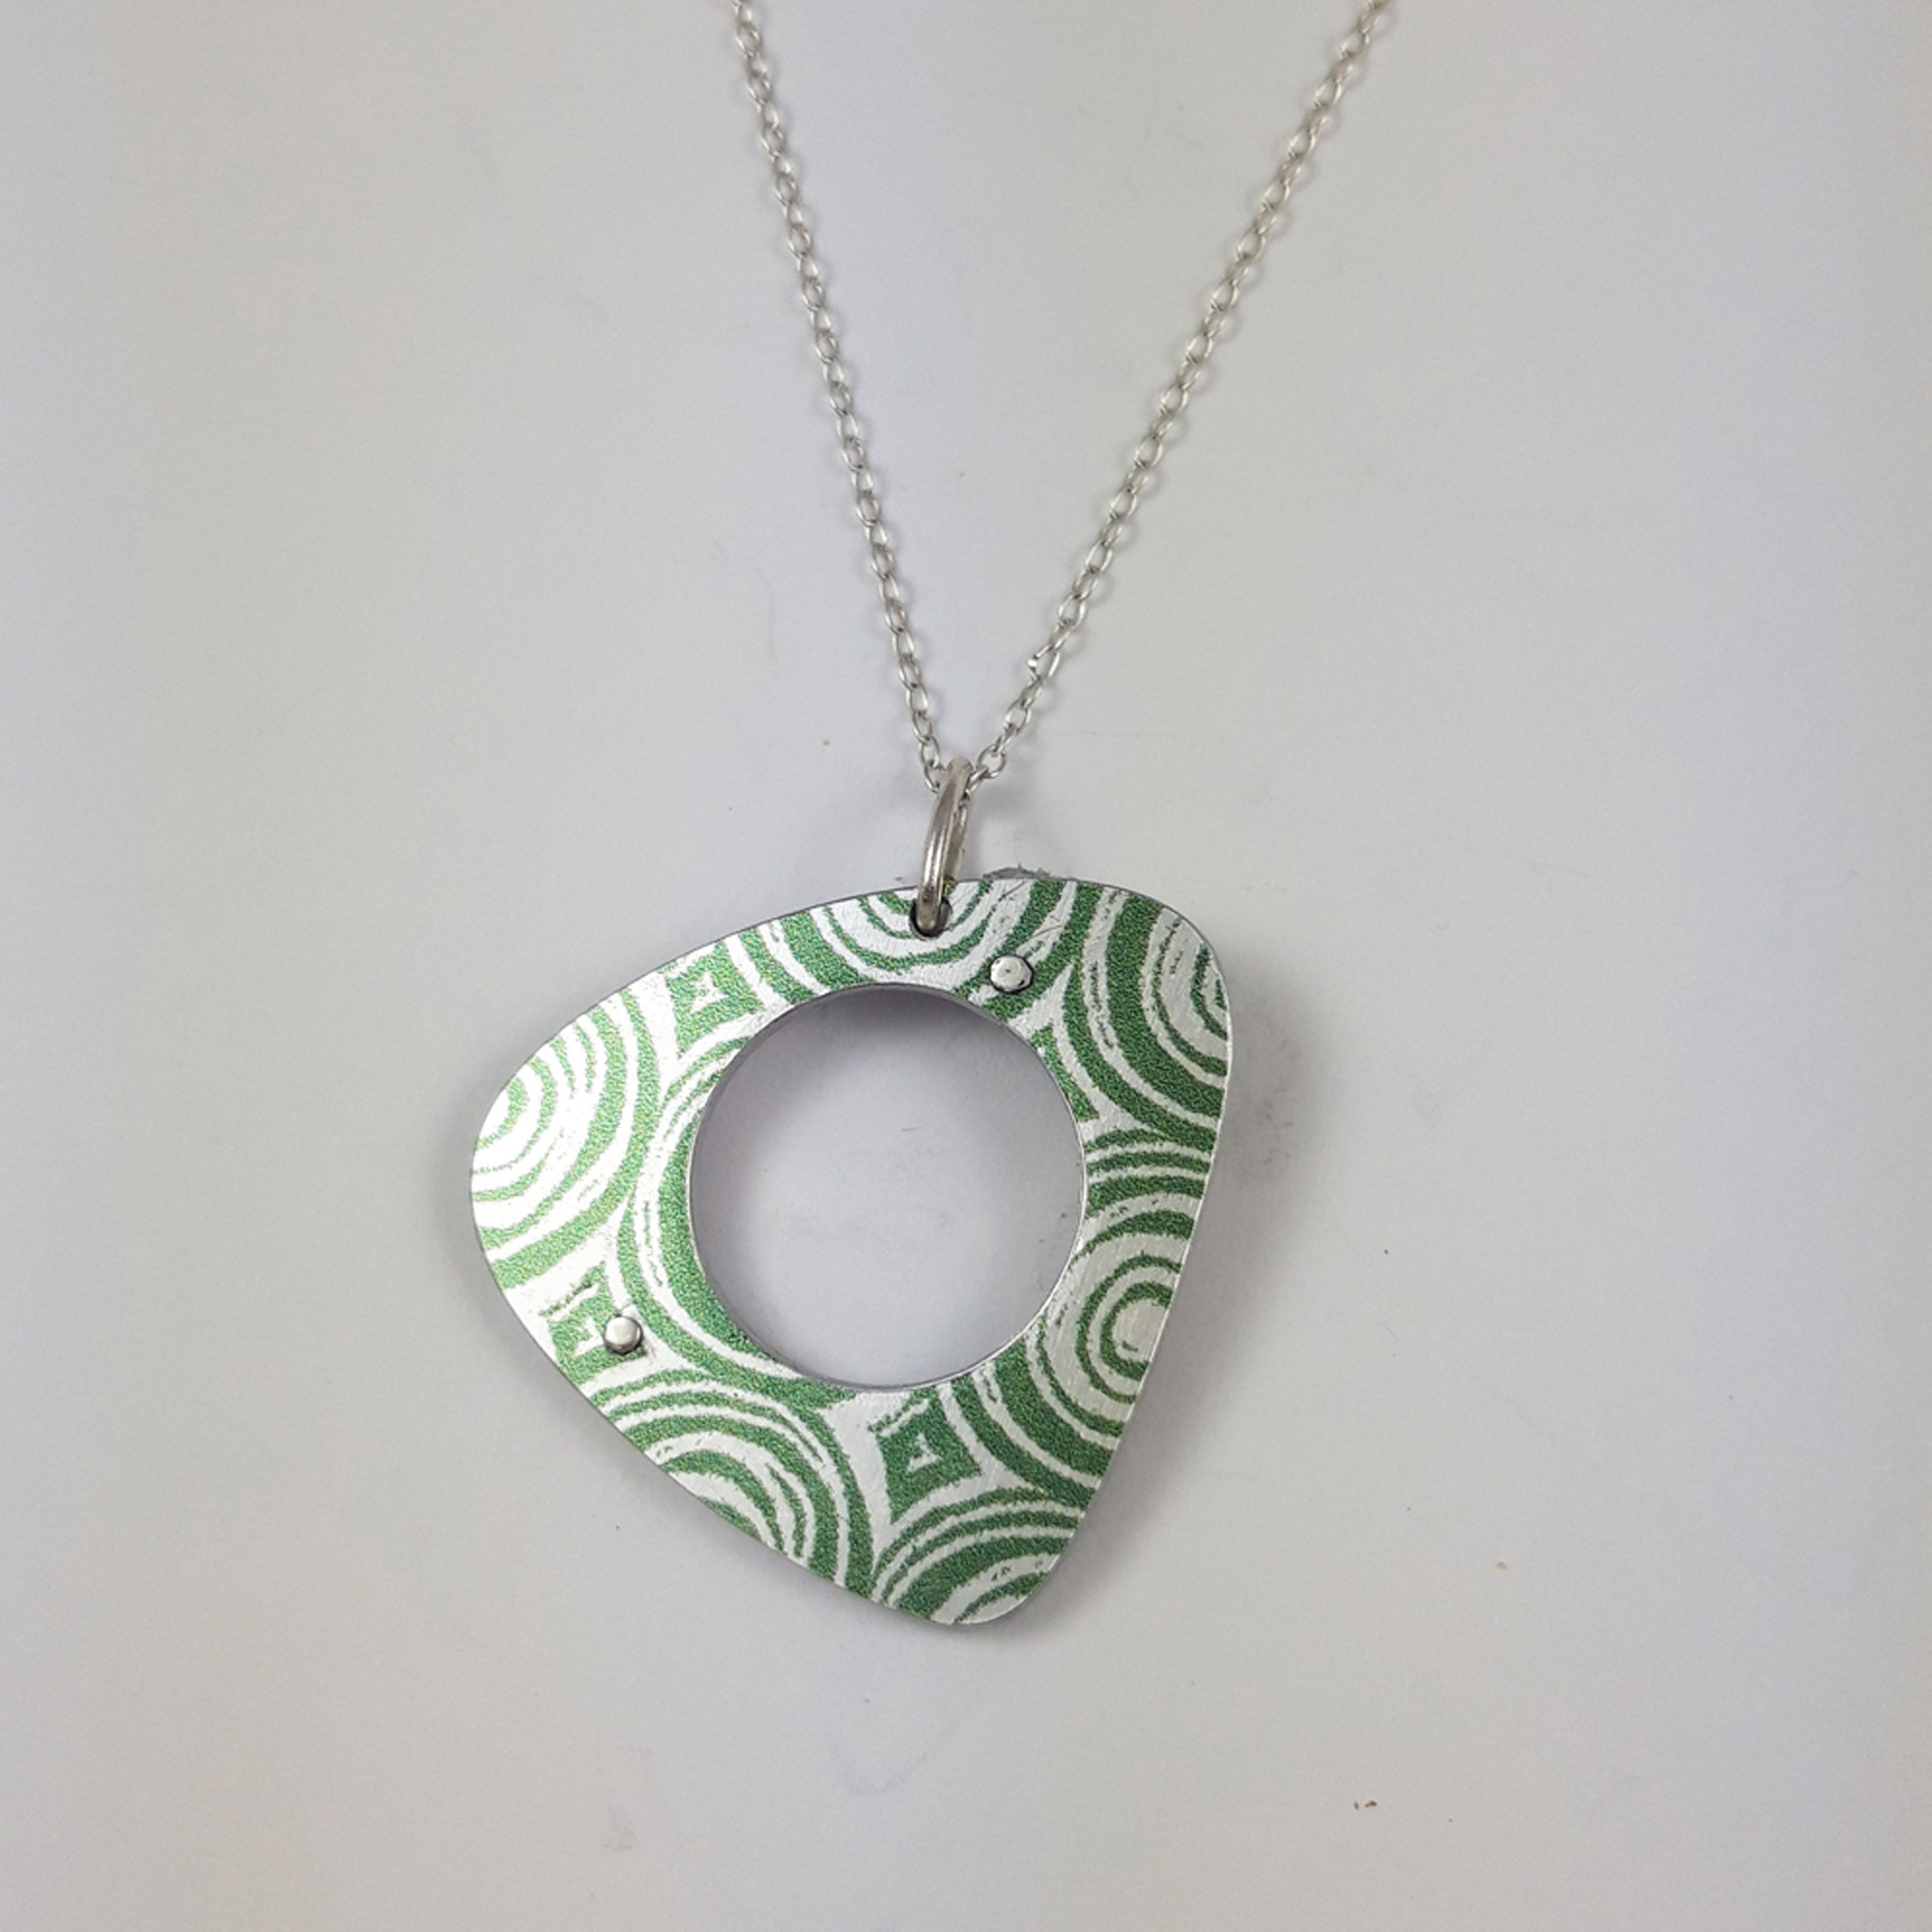 Green side of reversible suffragette pendant necklace